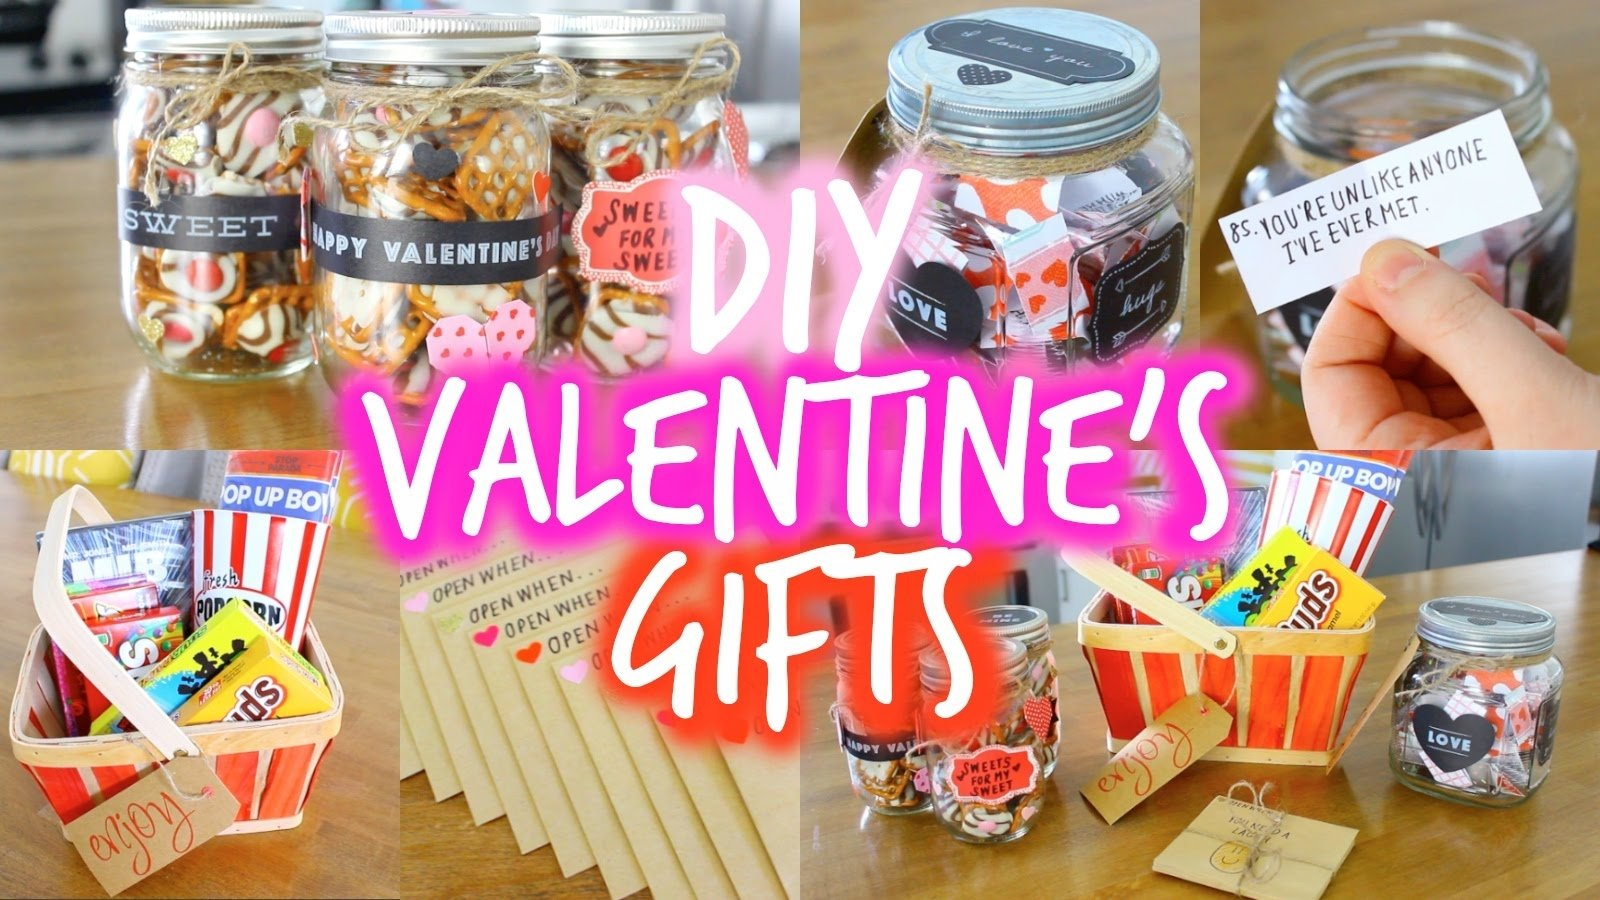 10 Famous Valentines For Him Gift Ideas easy diy valentines day gift ideas for your boyfriend youtube 2 2020